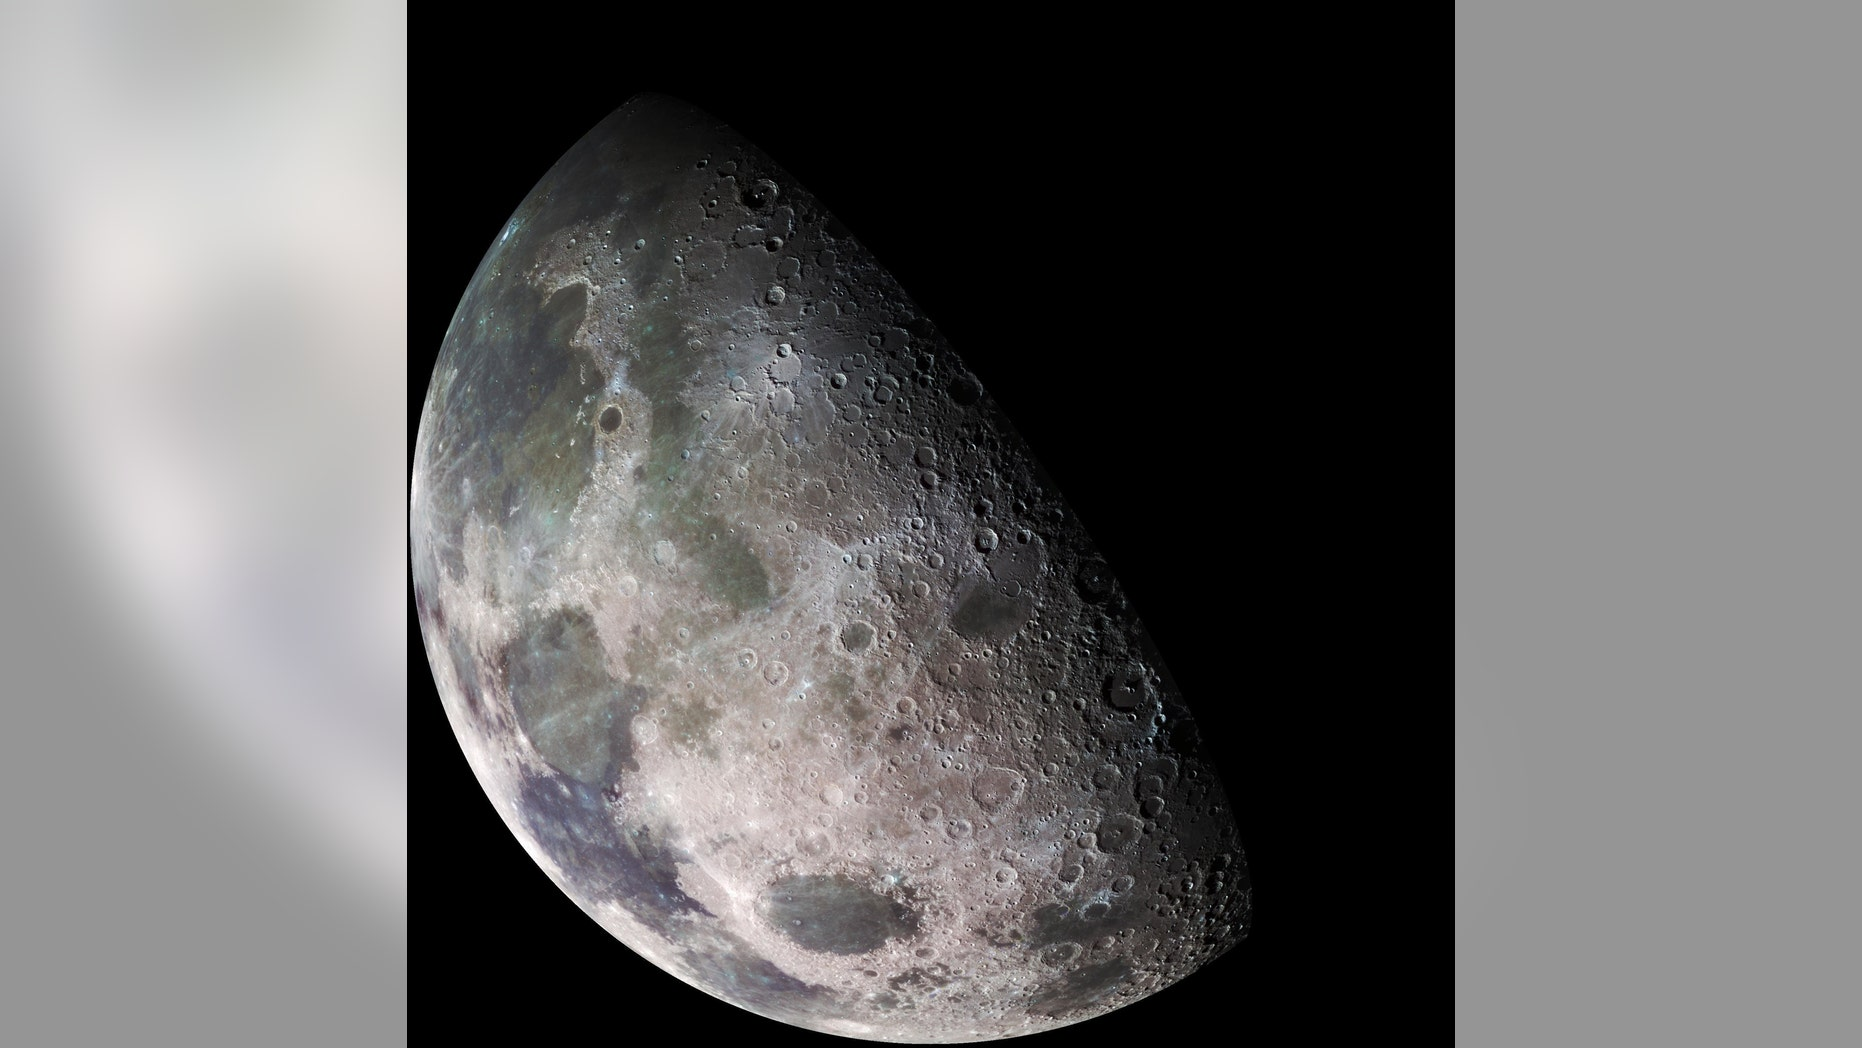 Galileo spacecraft surveyed the moon on Dec. 7, 1992, on its way to explore the Jupiter system in 1995-1997. Credit: NASA/JPL/USGS